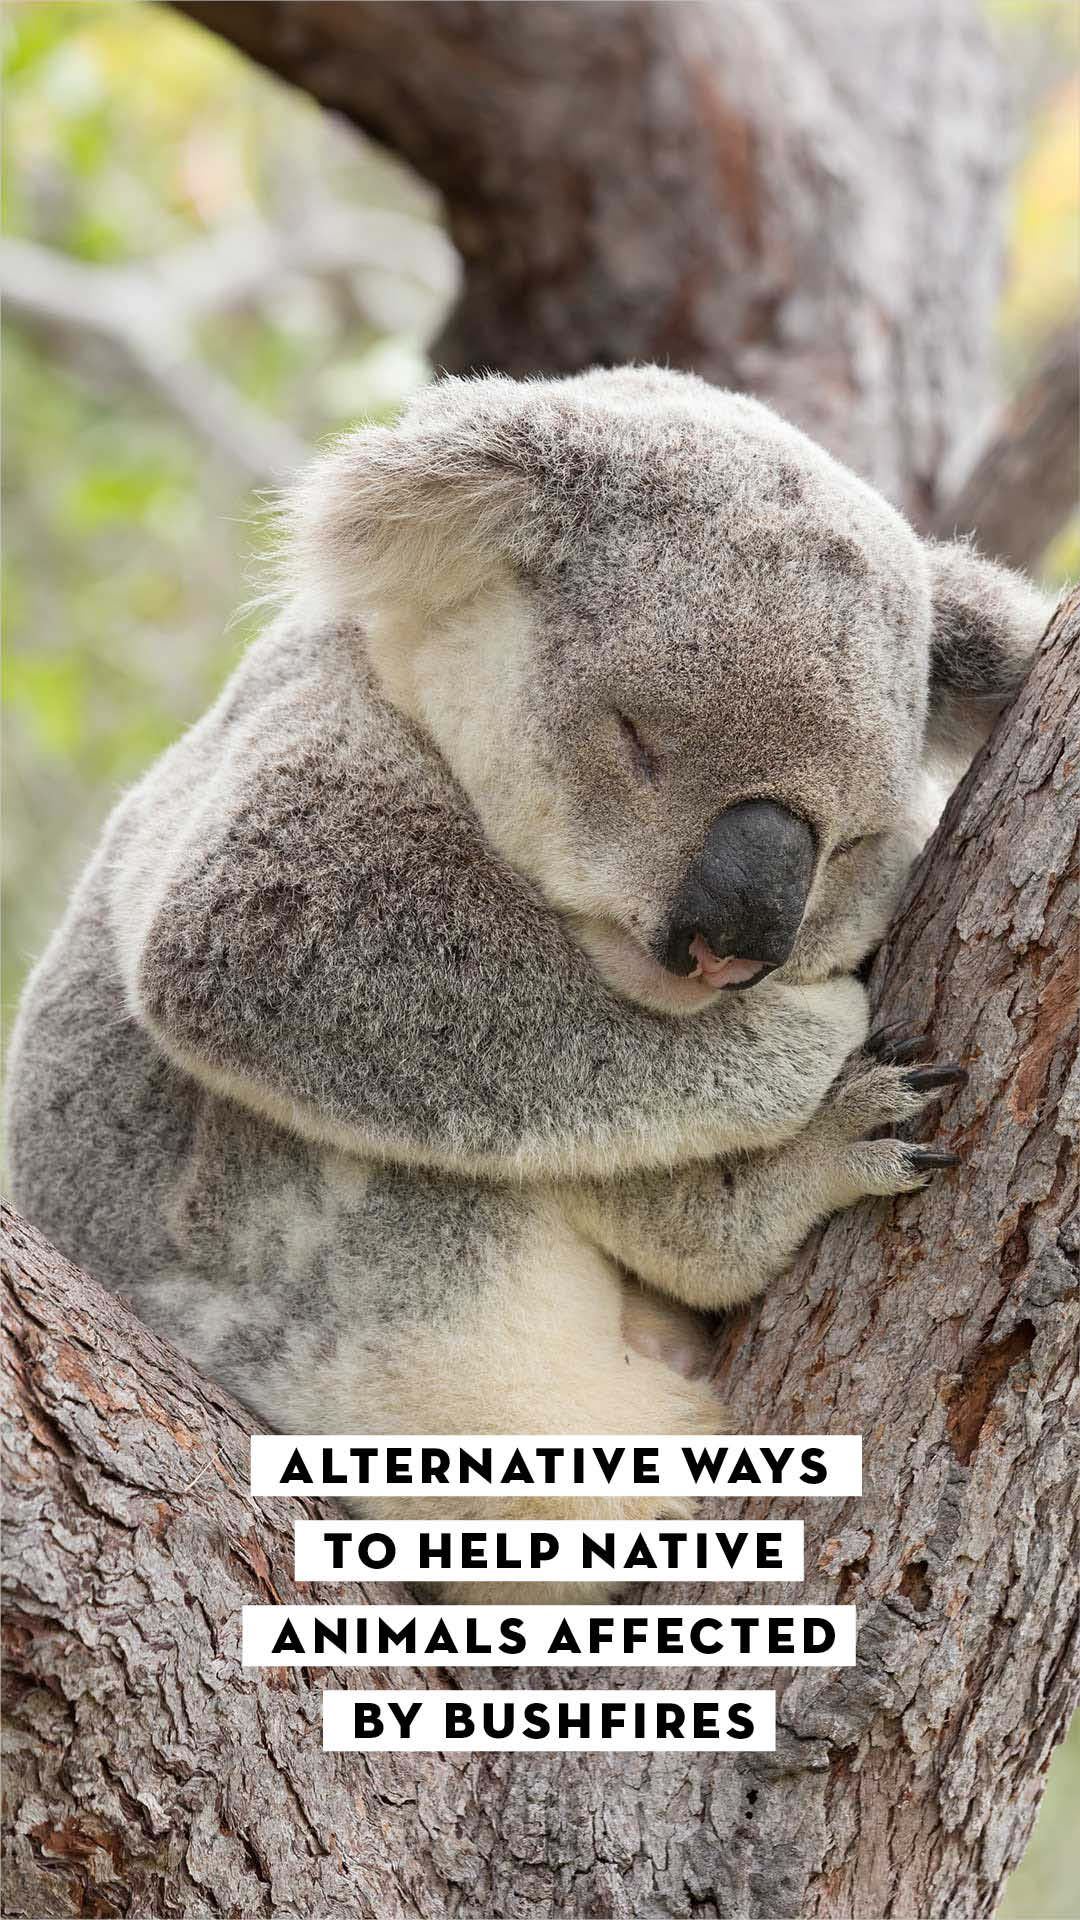 Alternative ways to help native animals affected by the